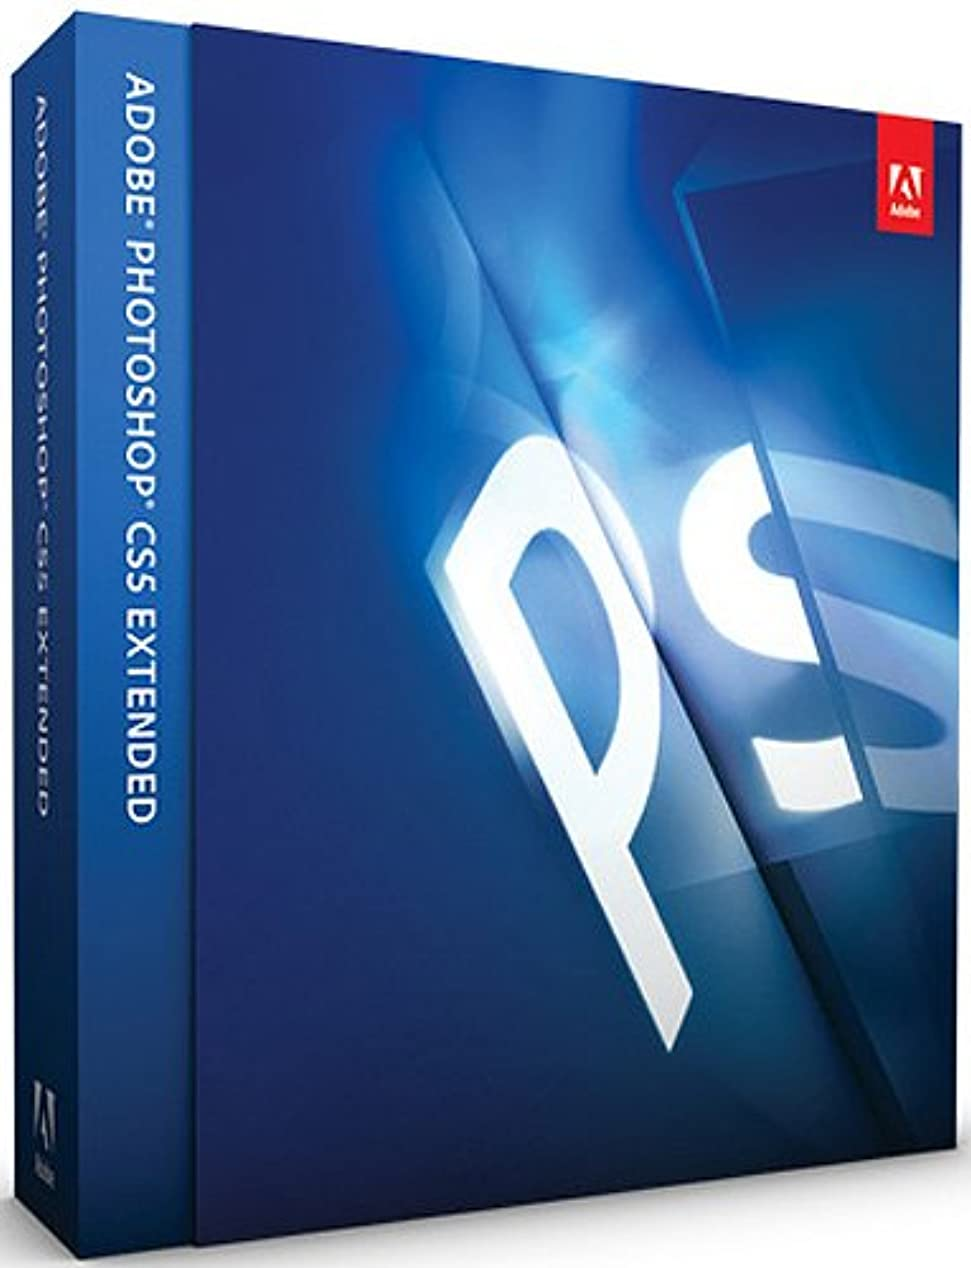 ディーラー静かにすでに【旧製品】Adobe Photoshop CS5 Extended Windows版 (32/64bit)